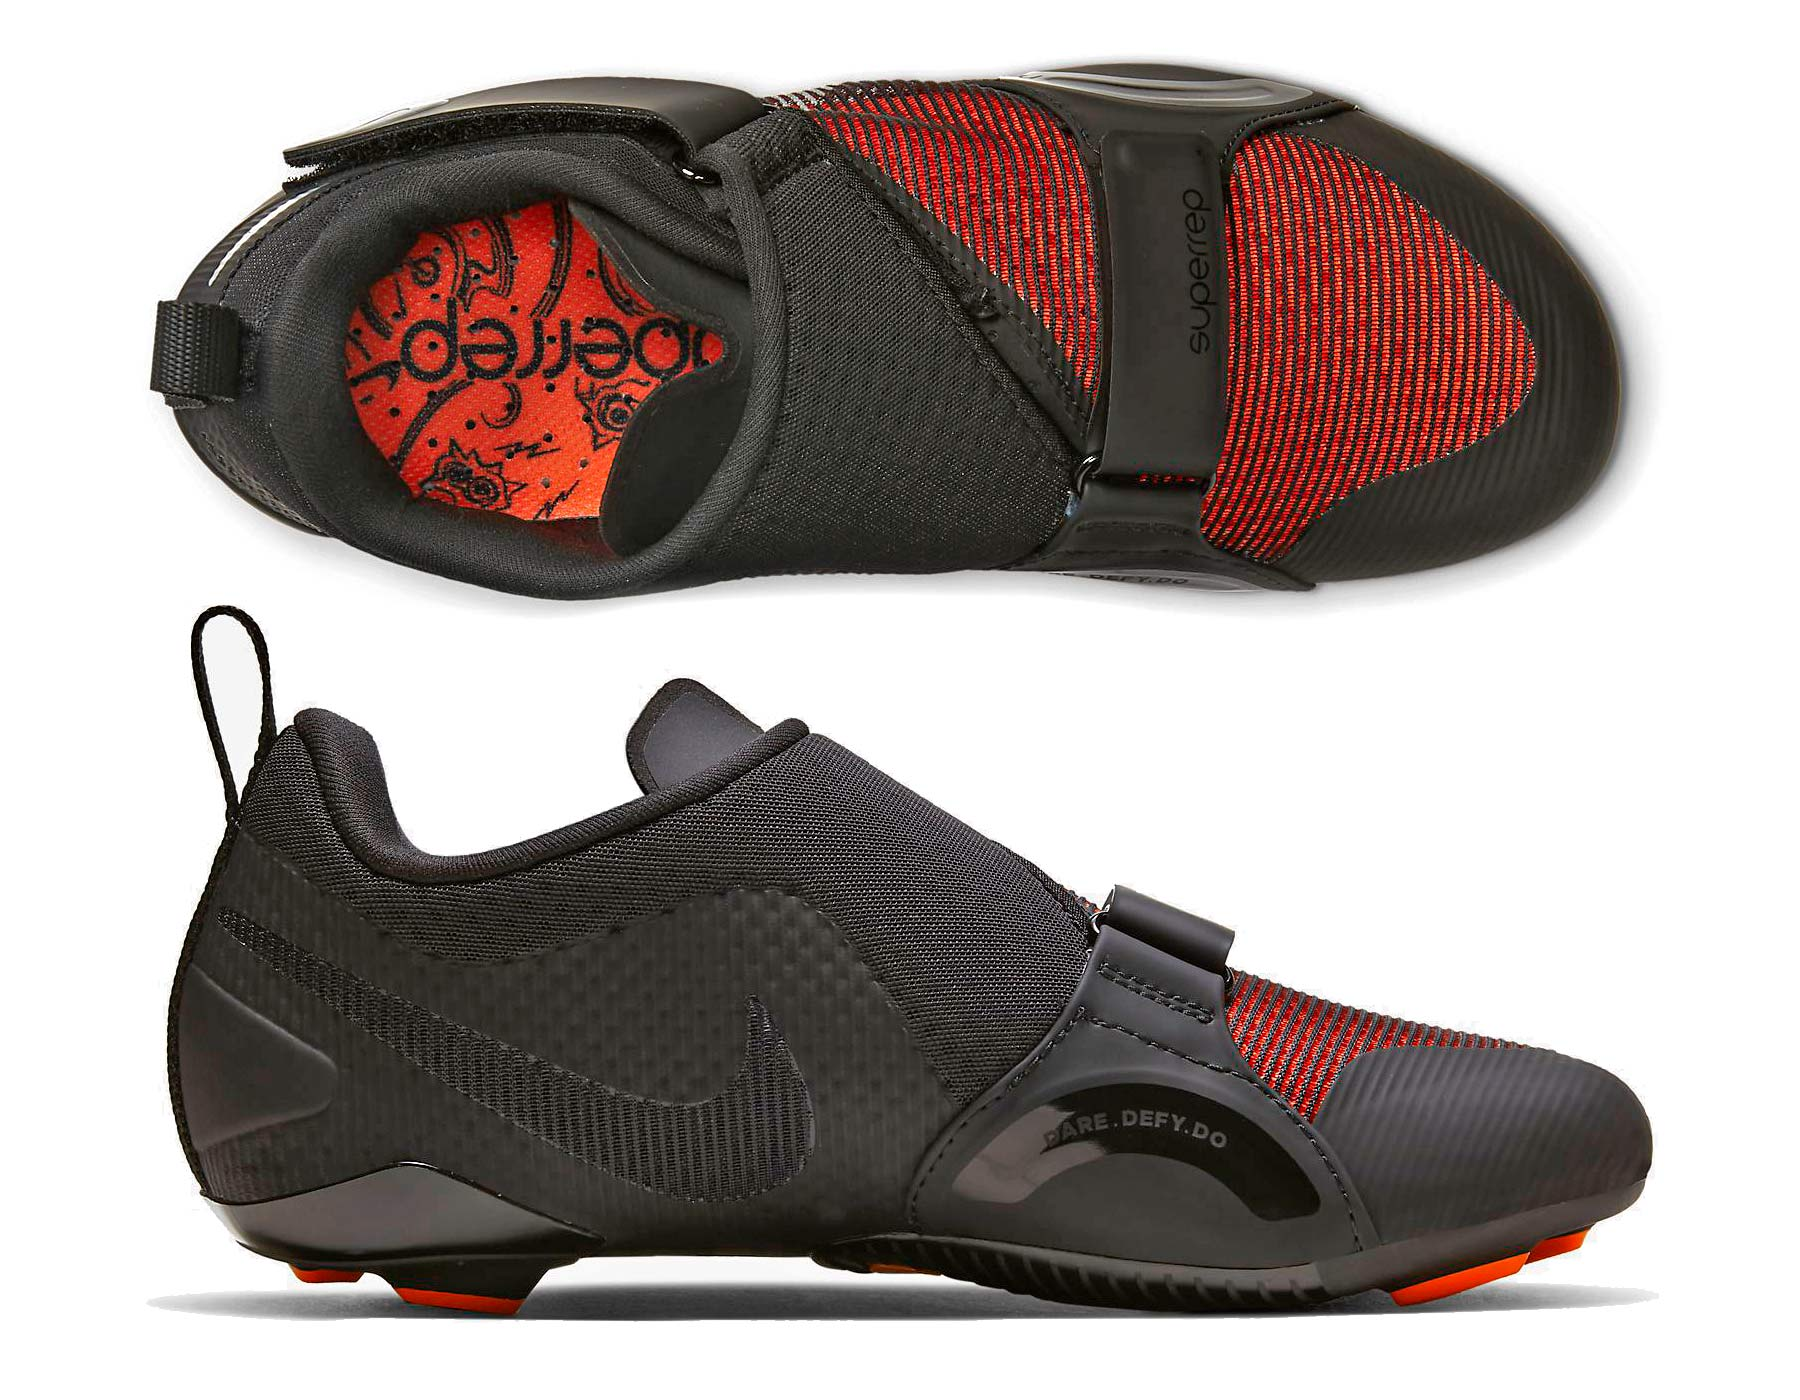 Nike SuperRep Cycle indoor cycling shoes, ultralight lightweight mesh indoor training spinning class bike shoes